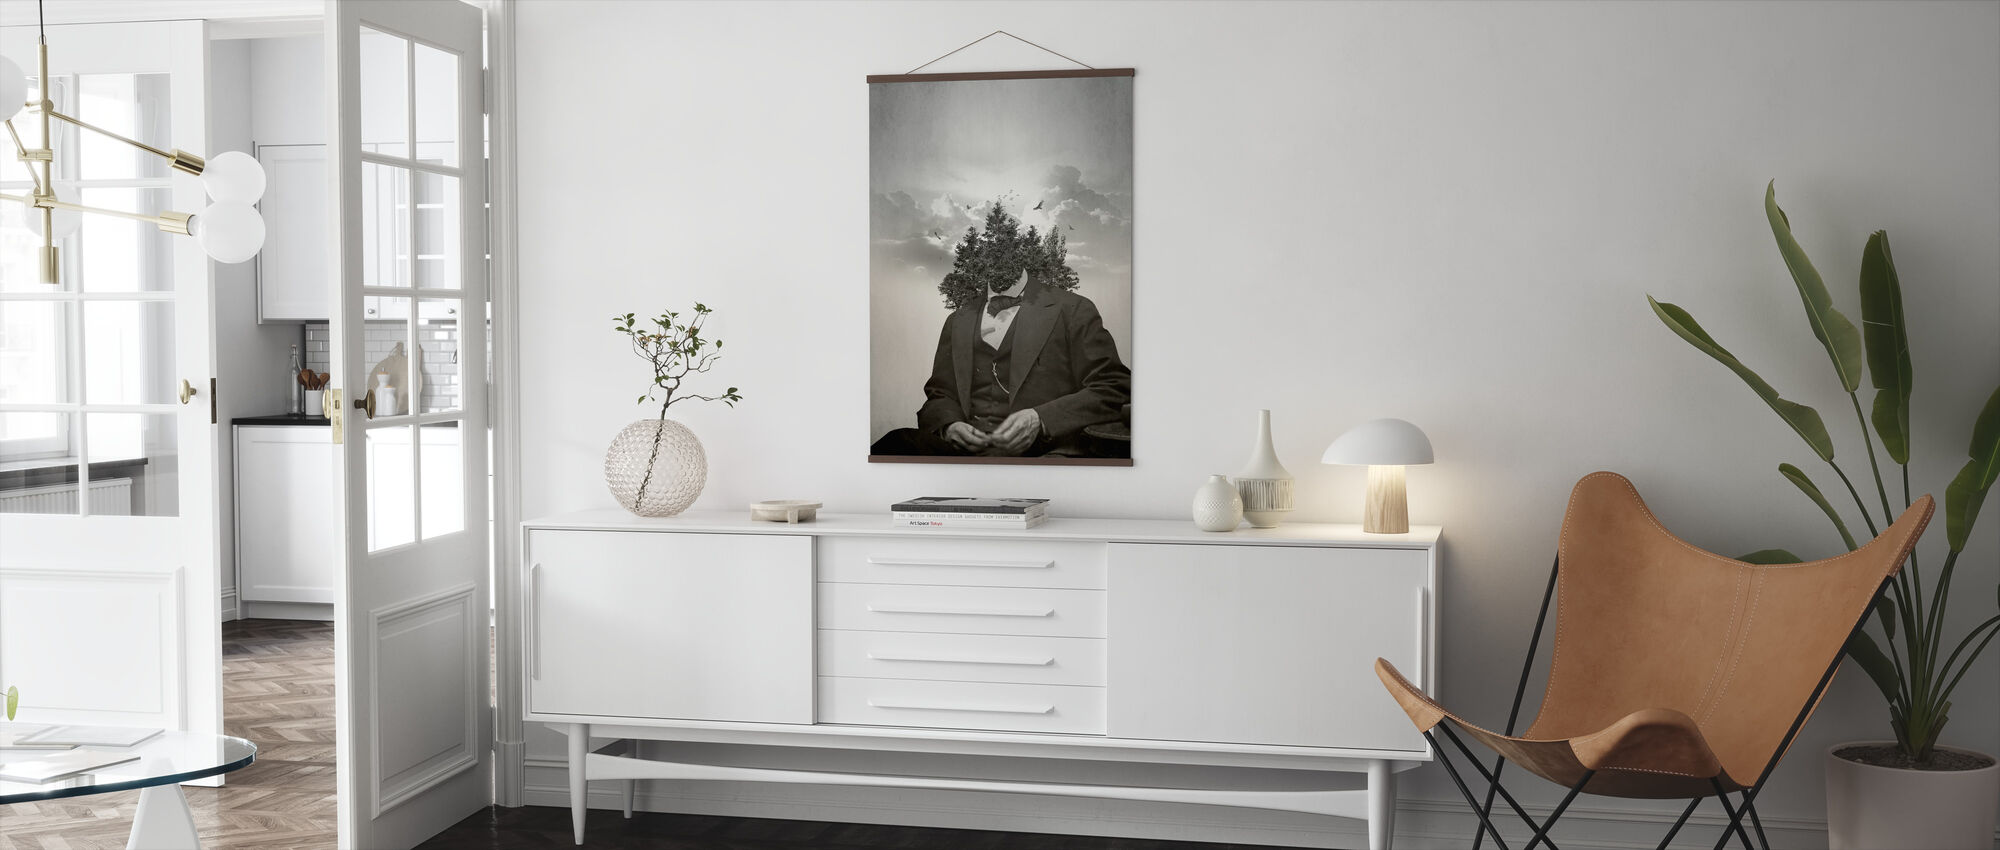 Forest - Poster - Living Room